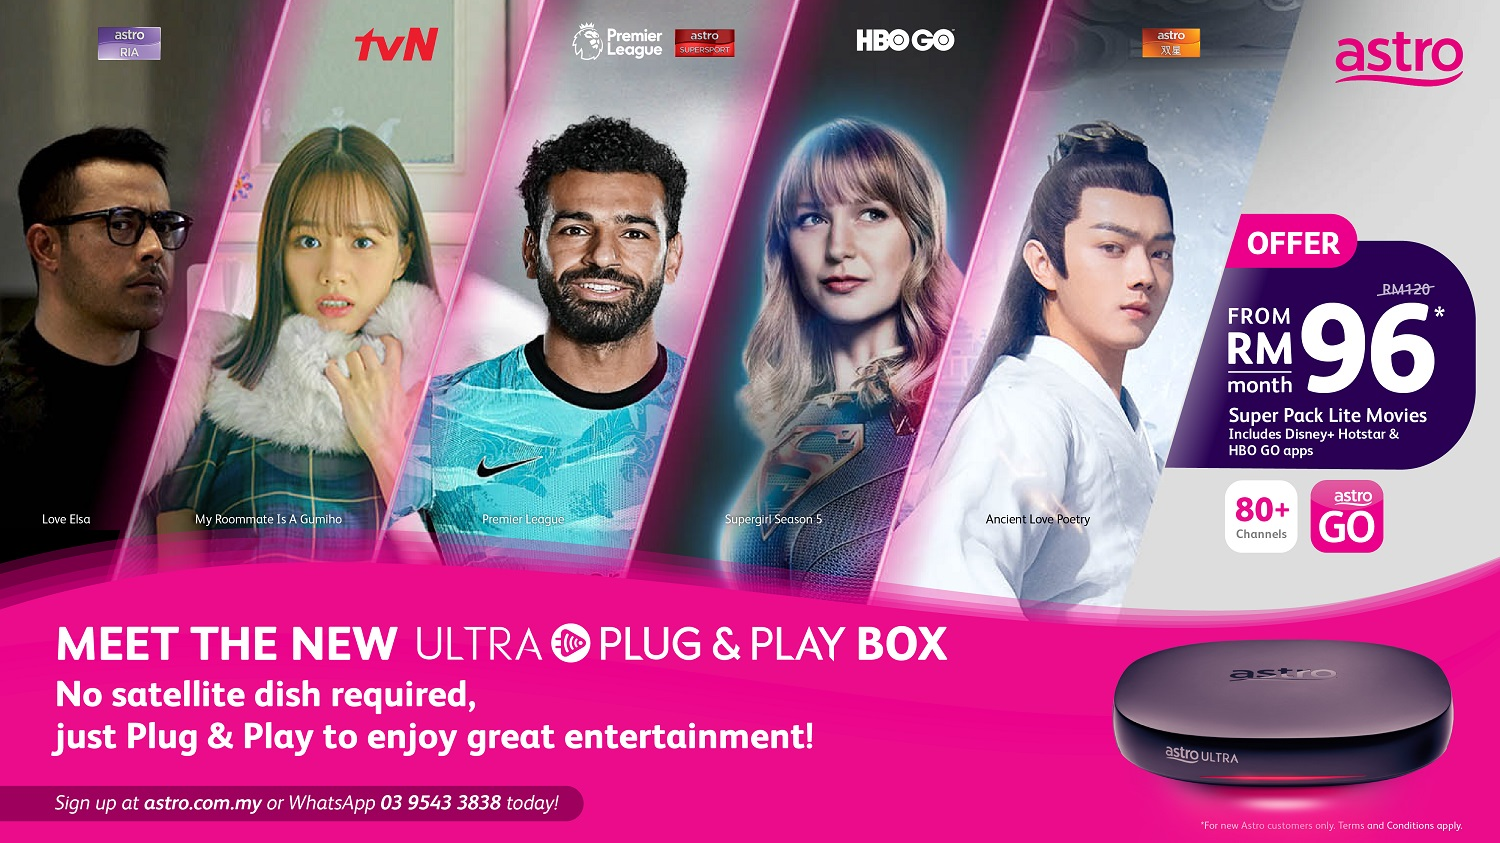 Now You Can Now Watch Astro Without A Satellite Dish With The New Ultra Plug & Play Box